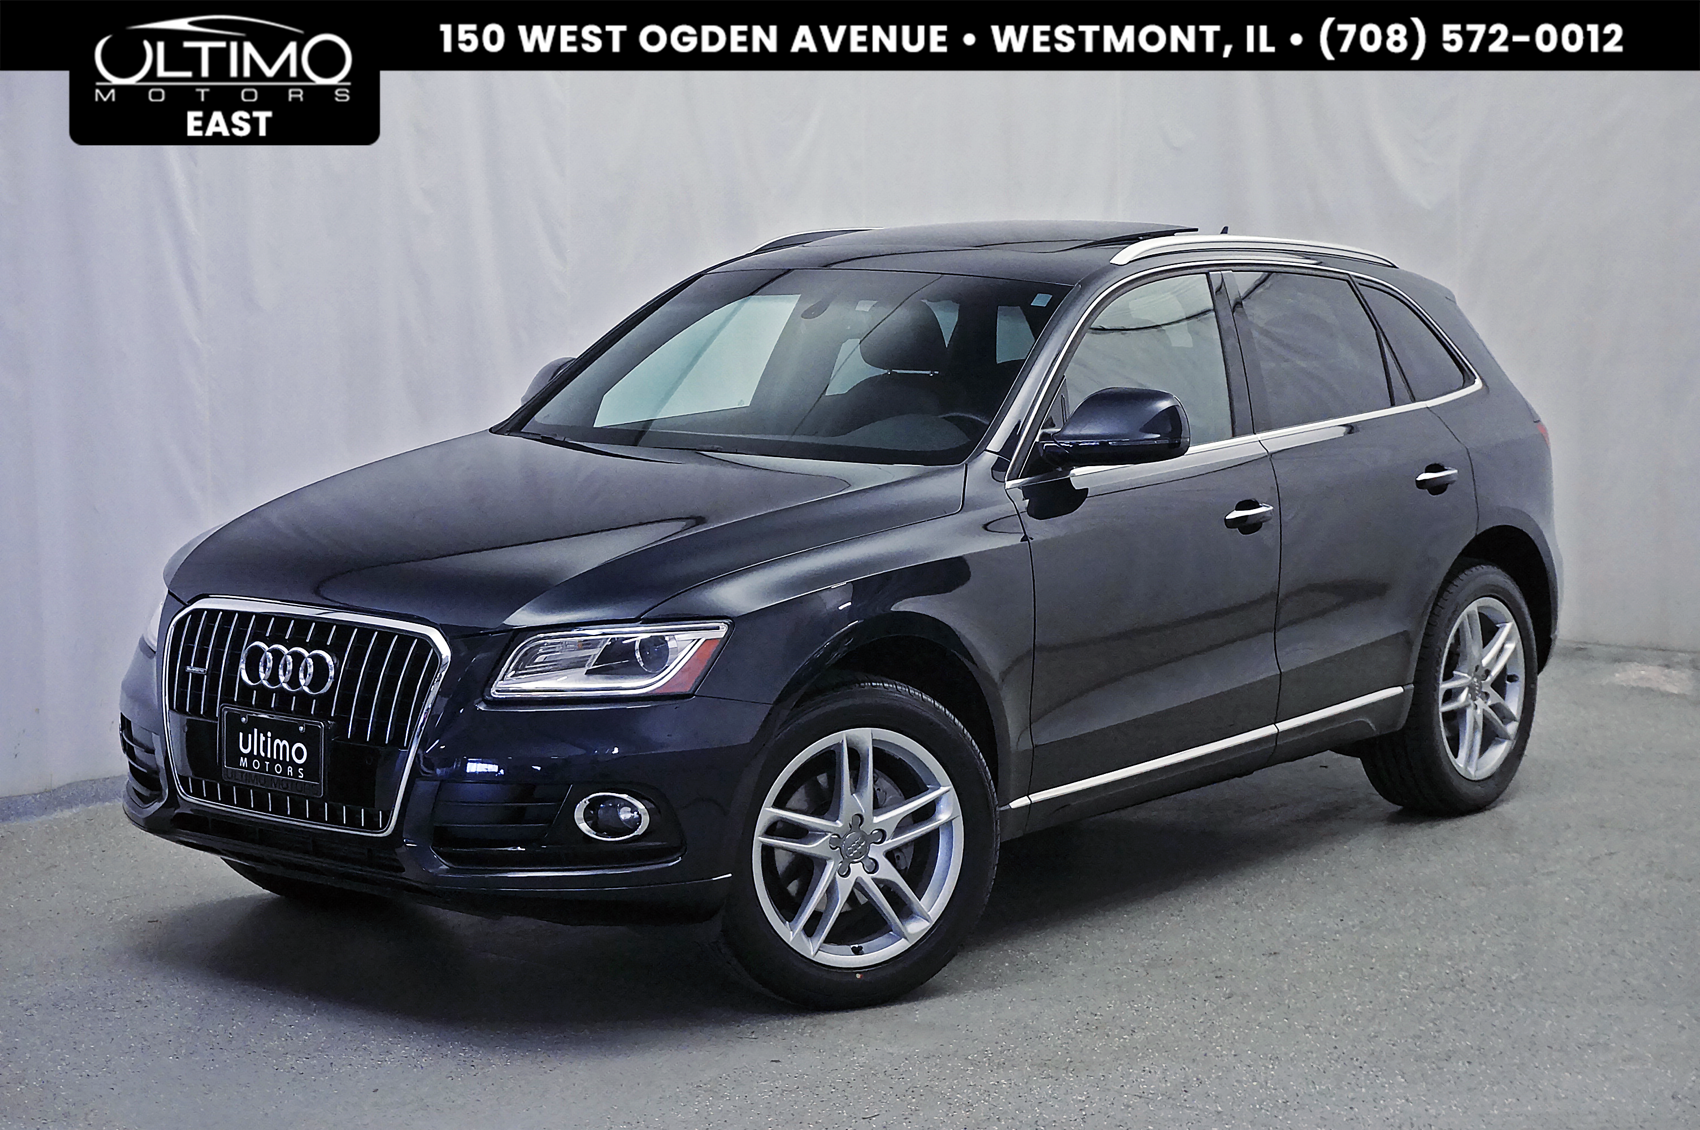 Pre-Owned 2015 Audi Q5 Premium Plus Technology Pkg!